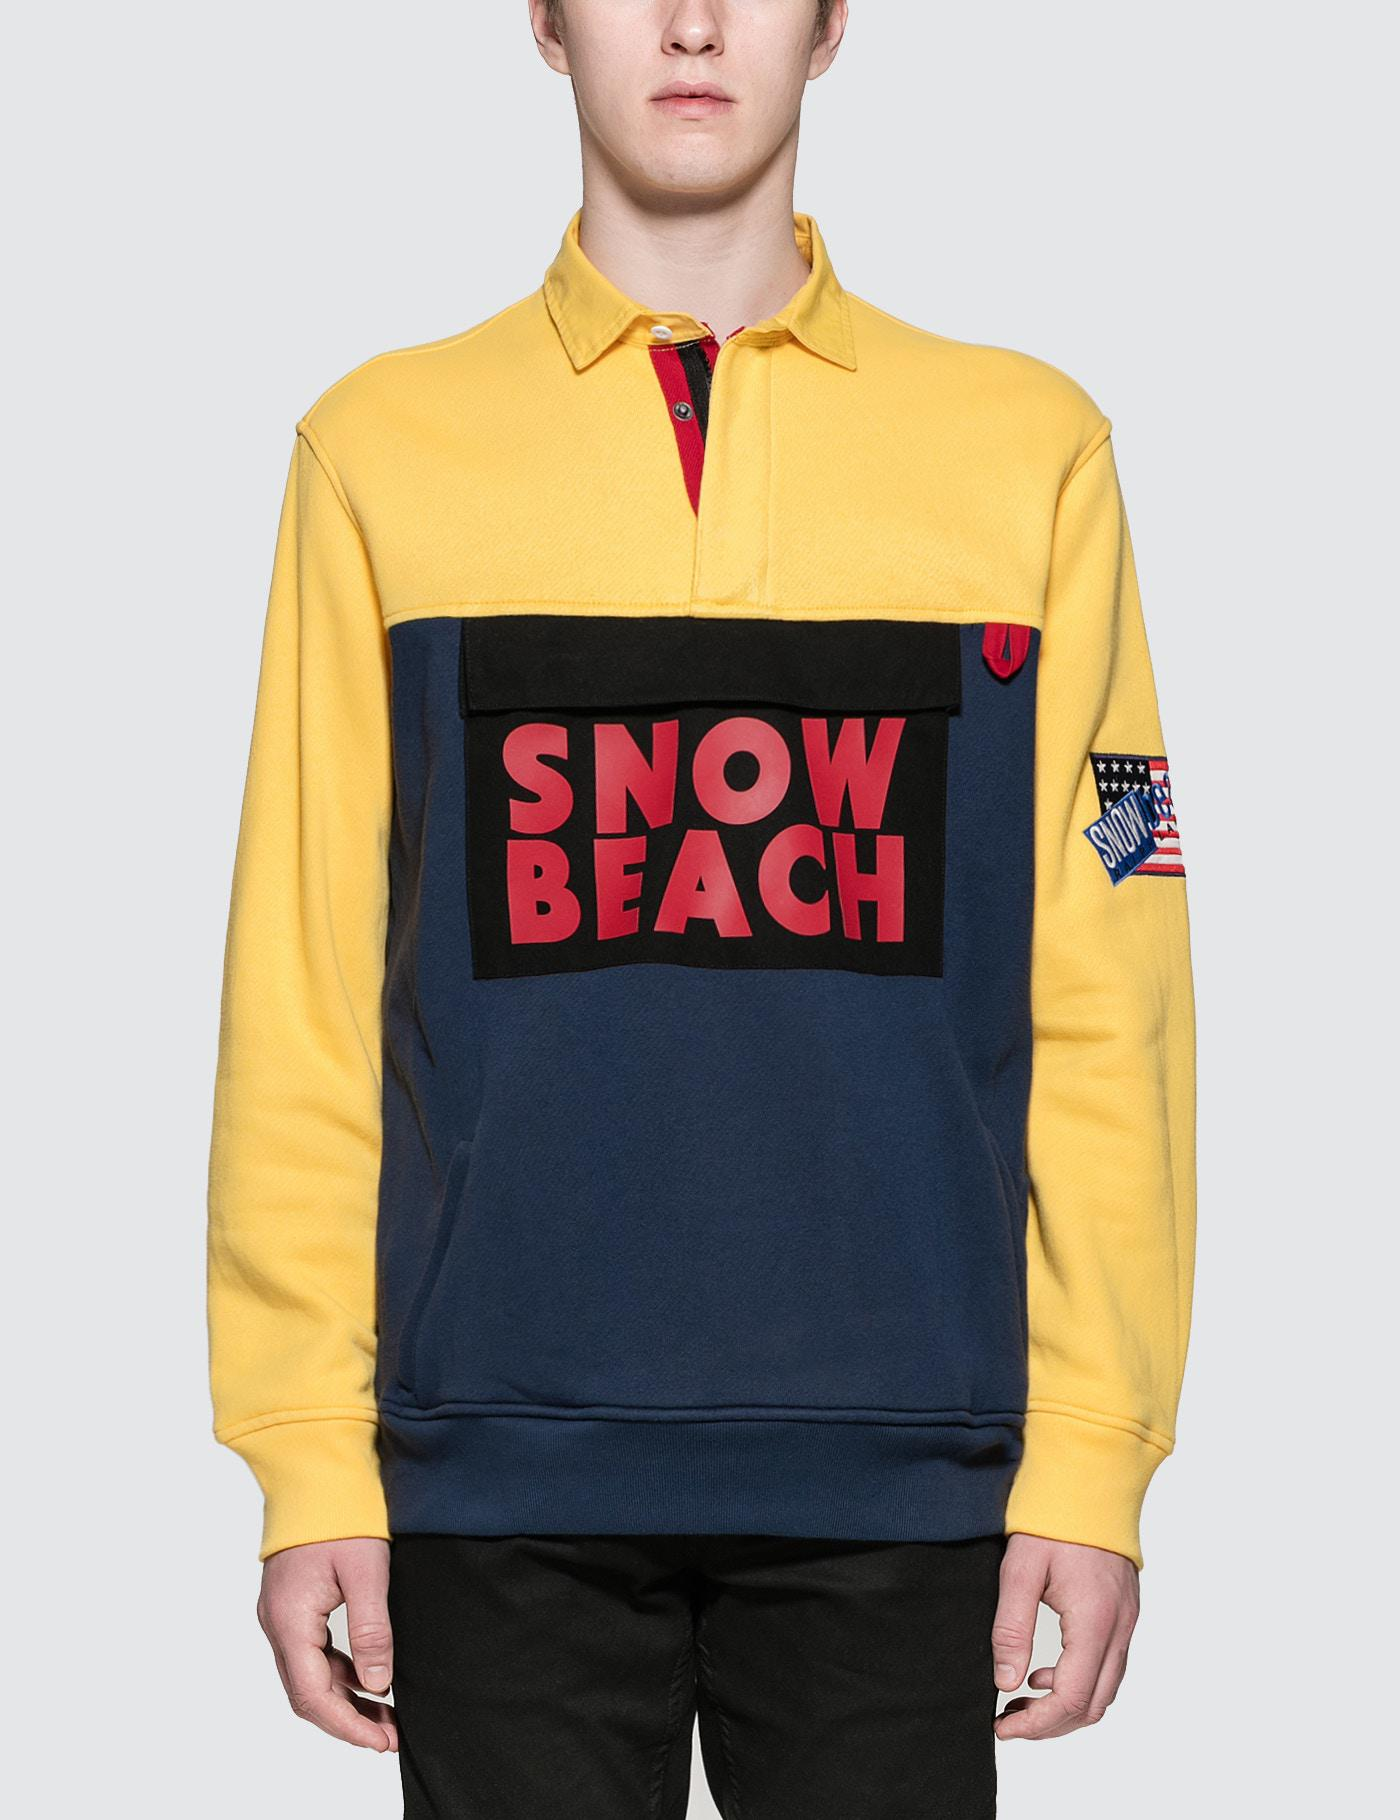 Polo Ralph Lauren The Snow Beach Fleece Rugby Shirt For